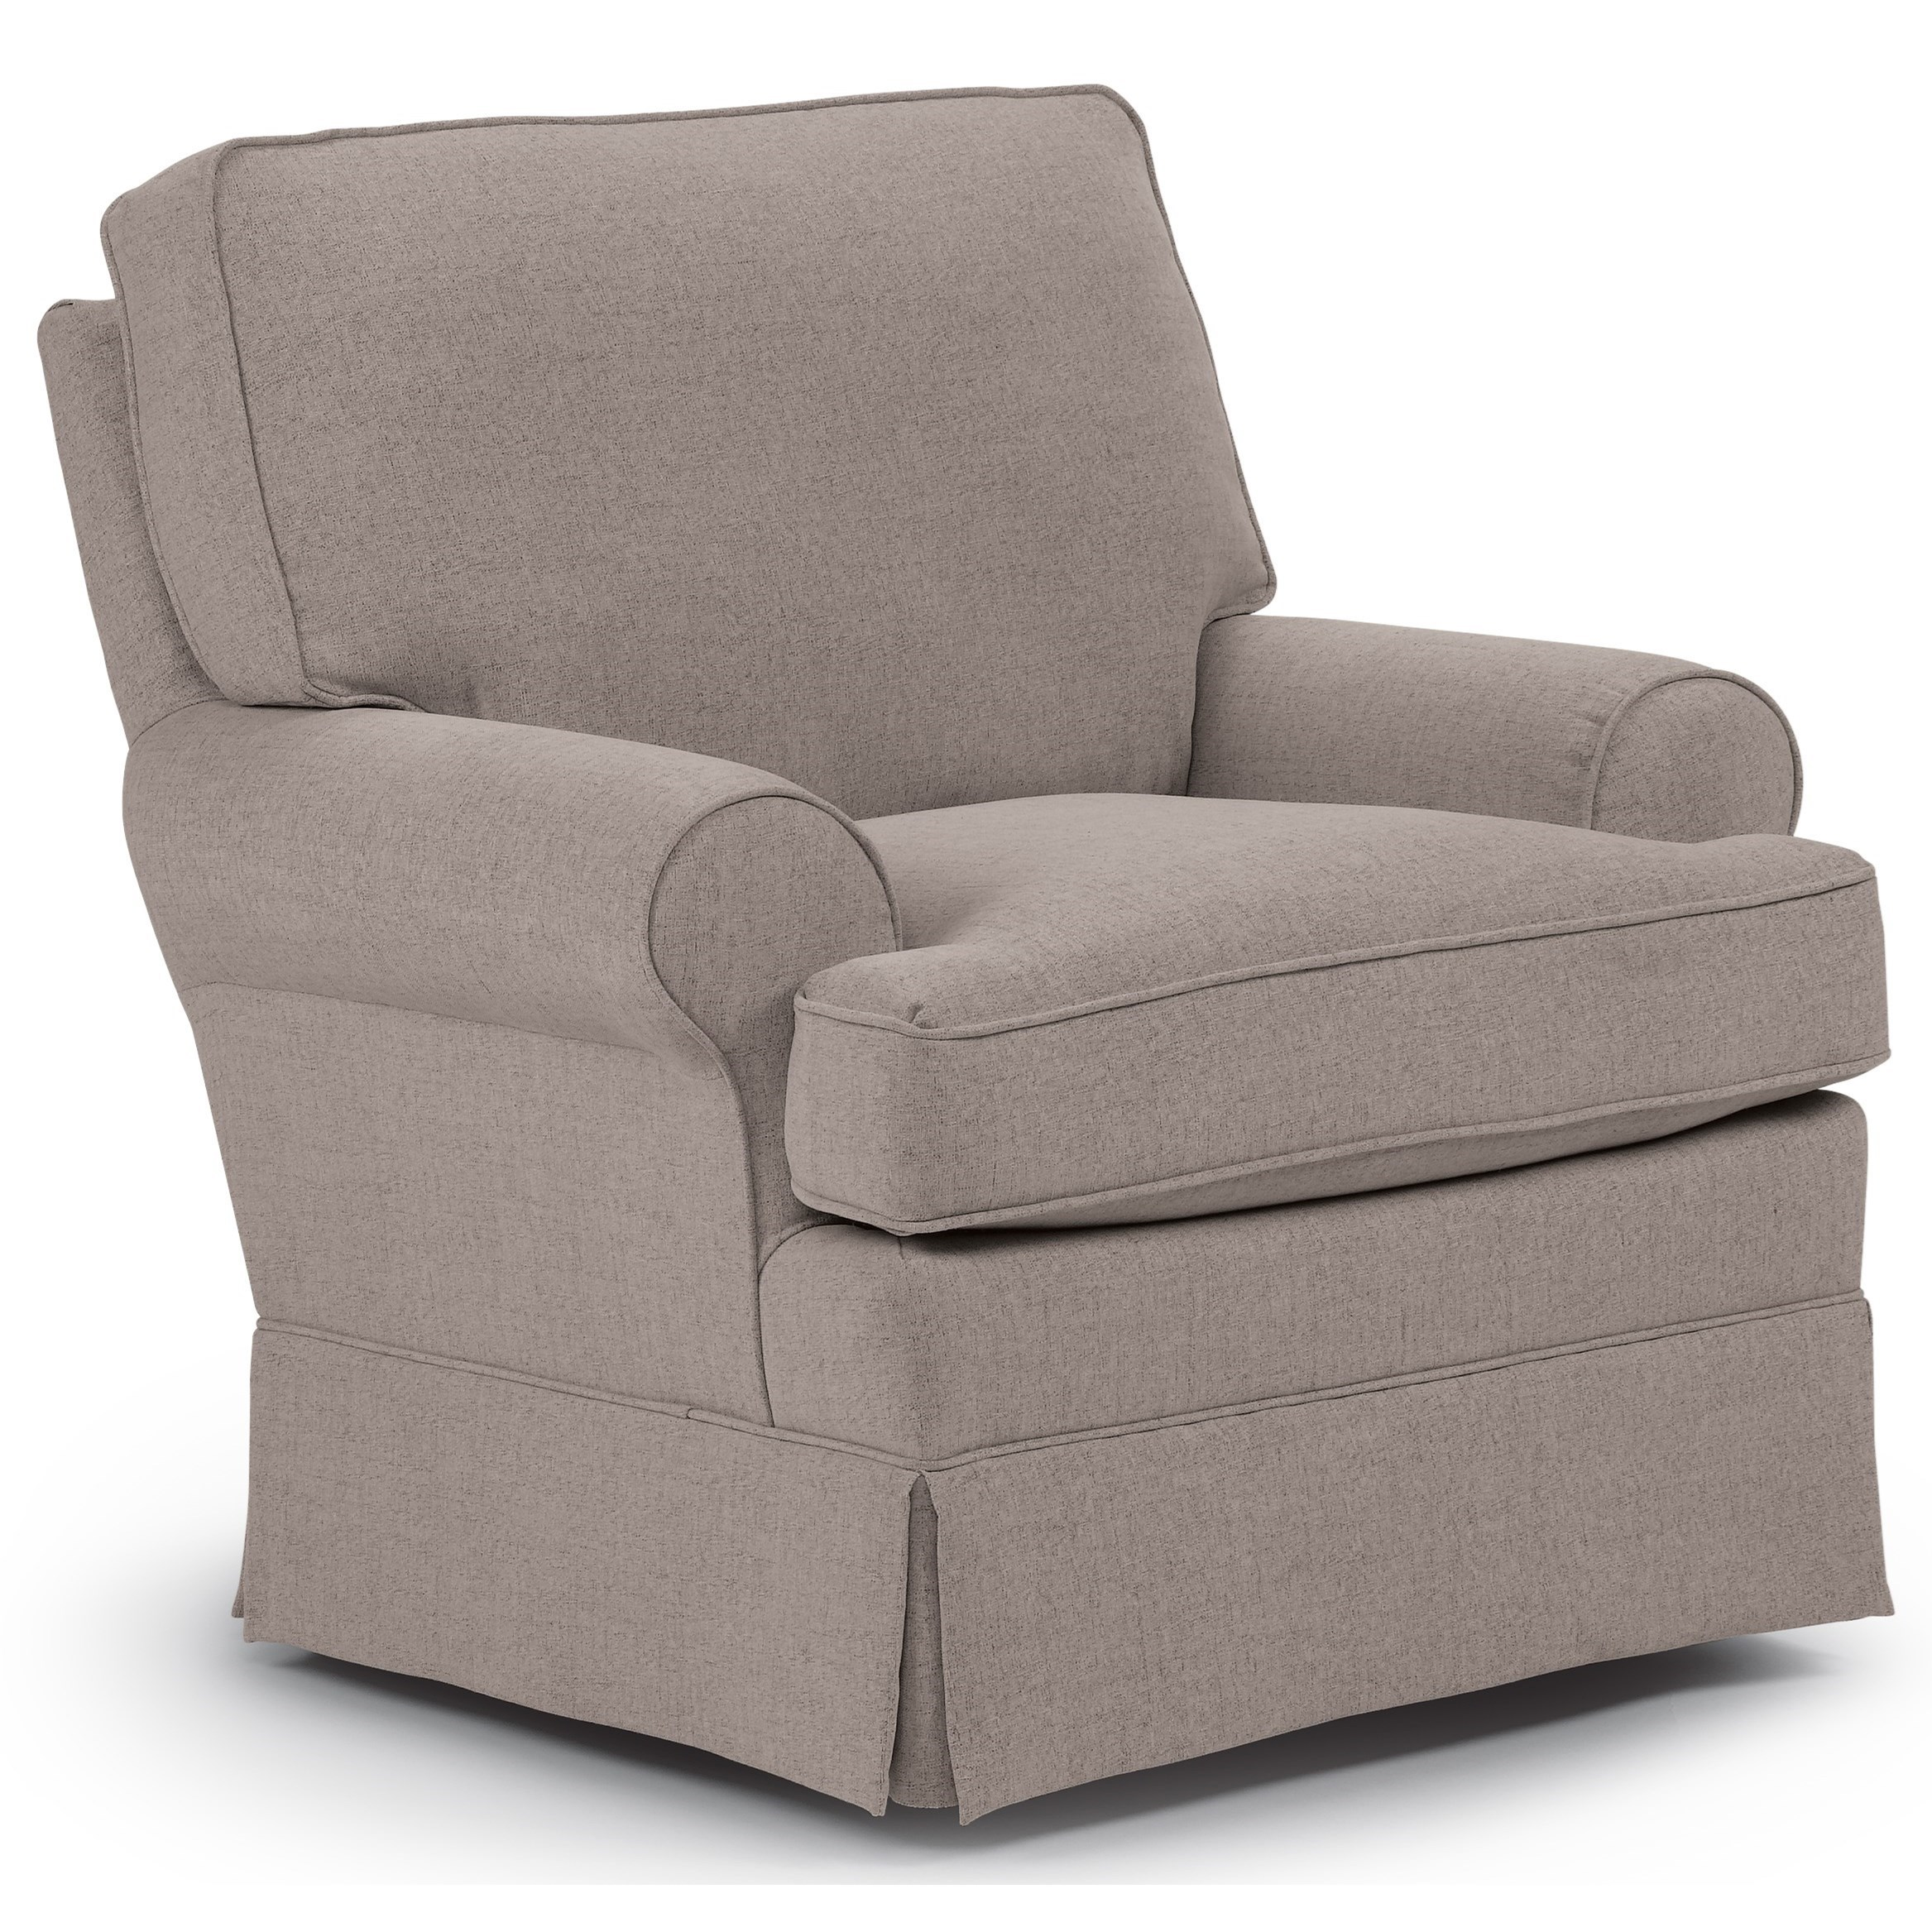 cheap glider chair bistro covers for sale best home furnishings swivel glide chairs 1577 quinn without welt cord trim